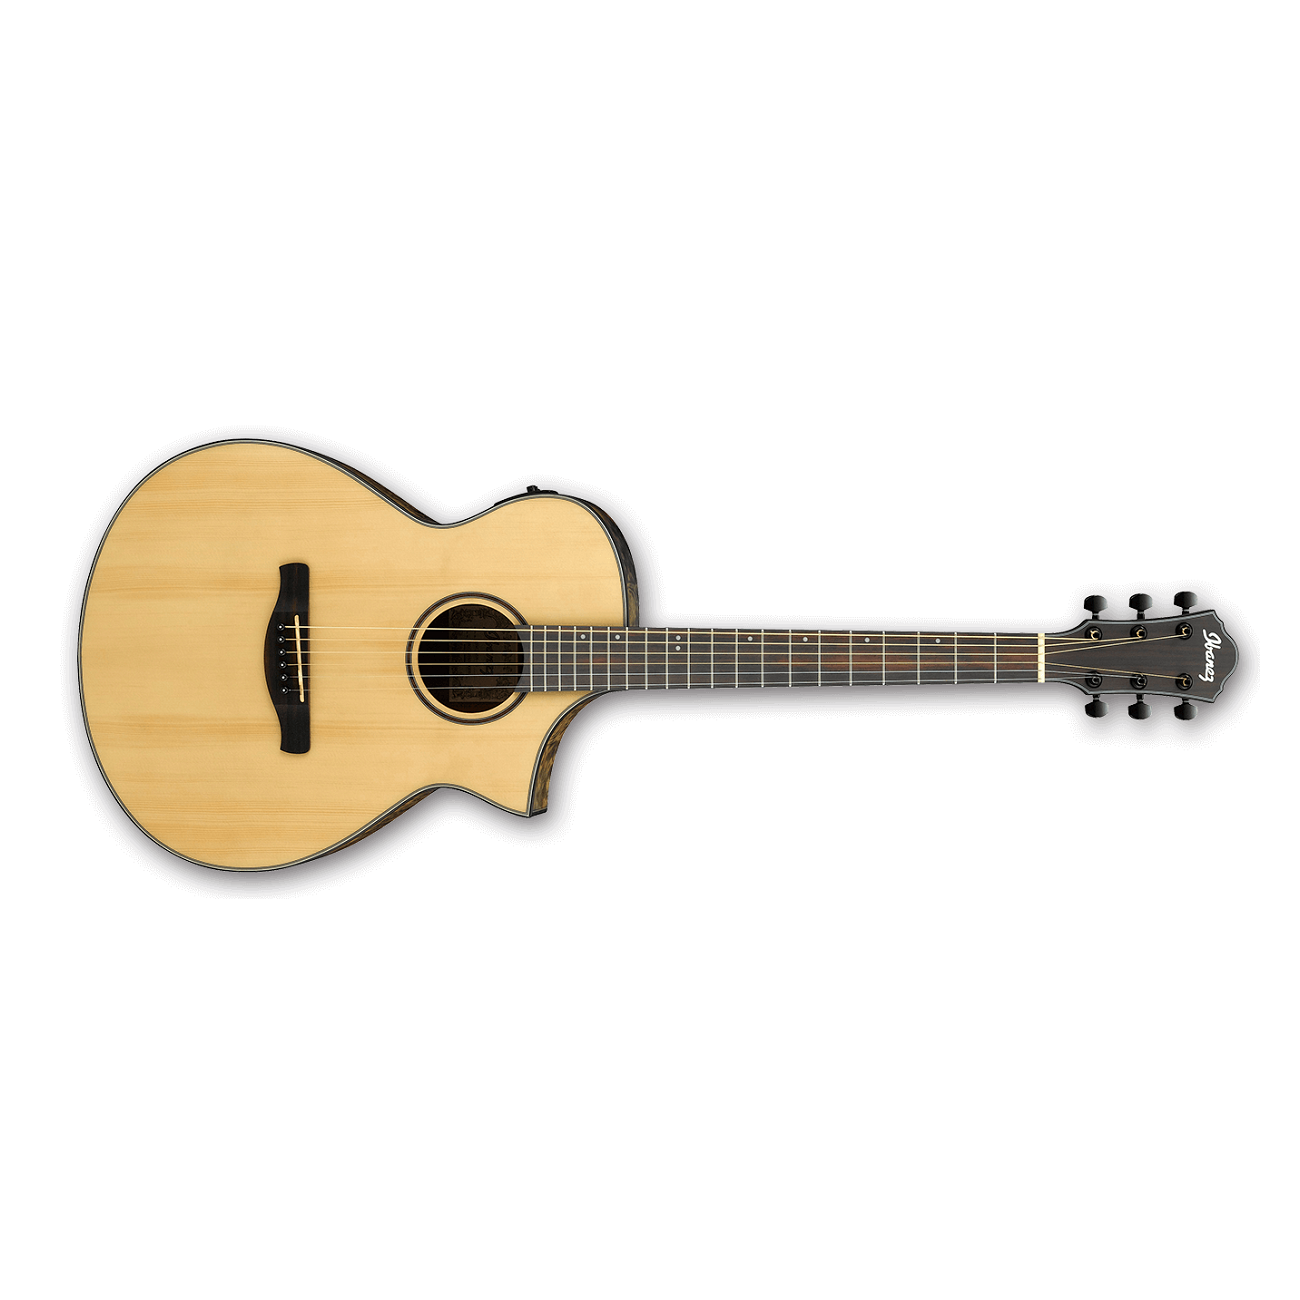 Ibanez Aewc24mblg Acoustic Electric Guitar In Natural Low Gloss Acoustic Electric Guitar Acoustic Electric Guitar